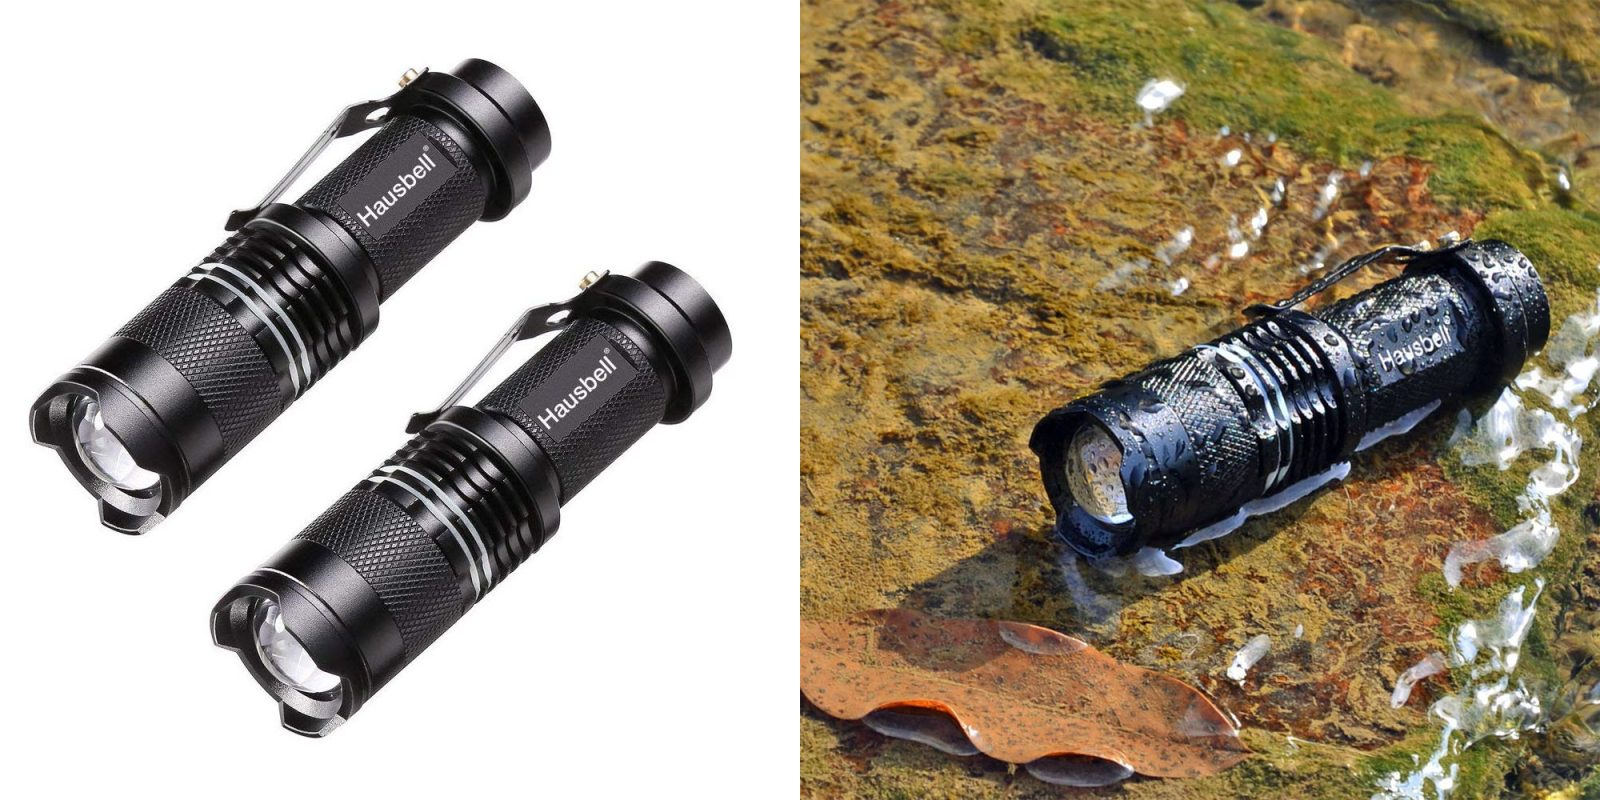 For around $2.50 Prime shipped each, you can carry these two LED flashlights